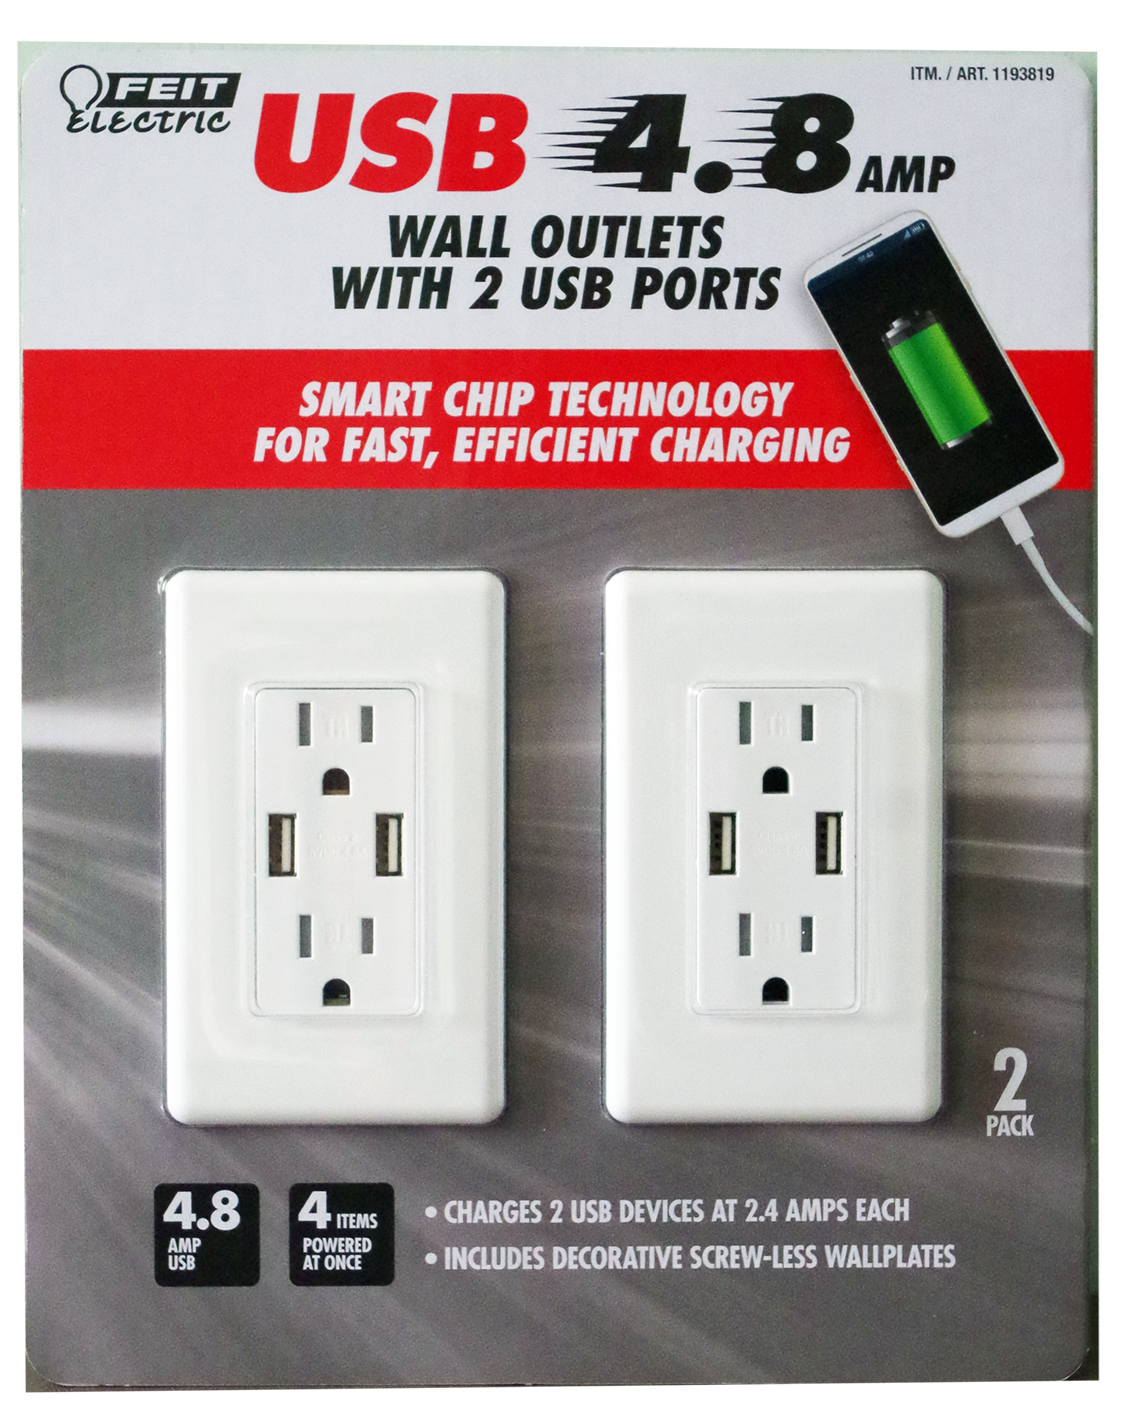 Feit Electric wall outlets with 2 USB ports, 2 pack